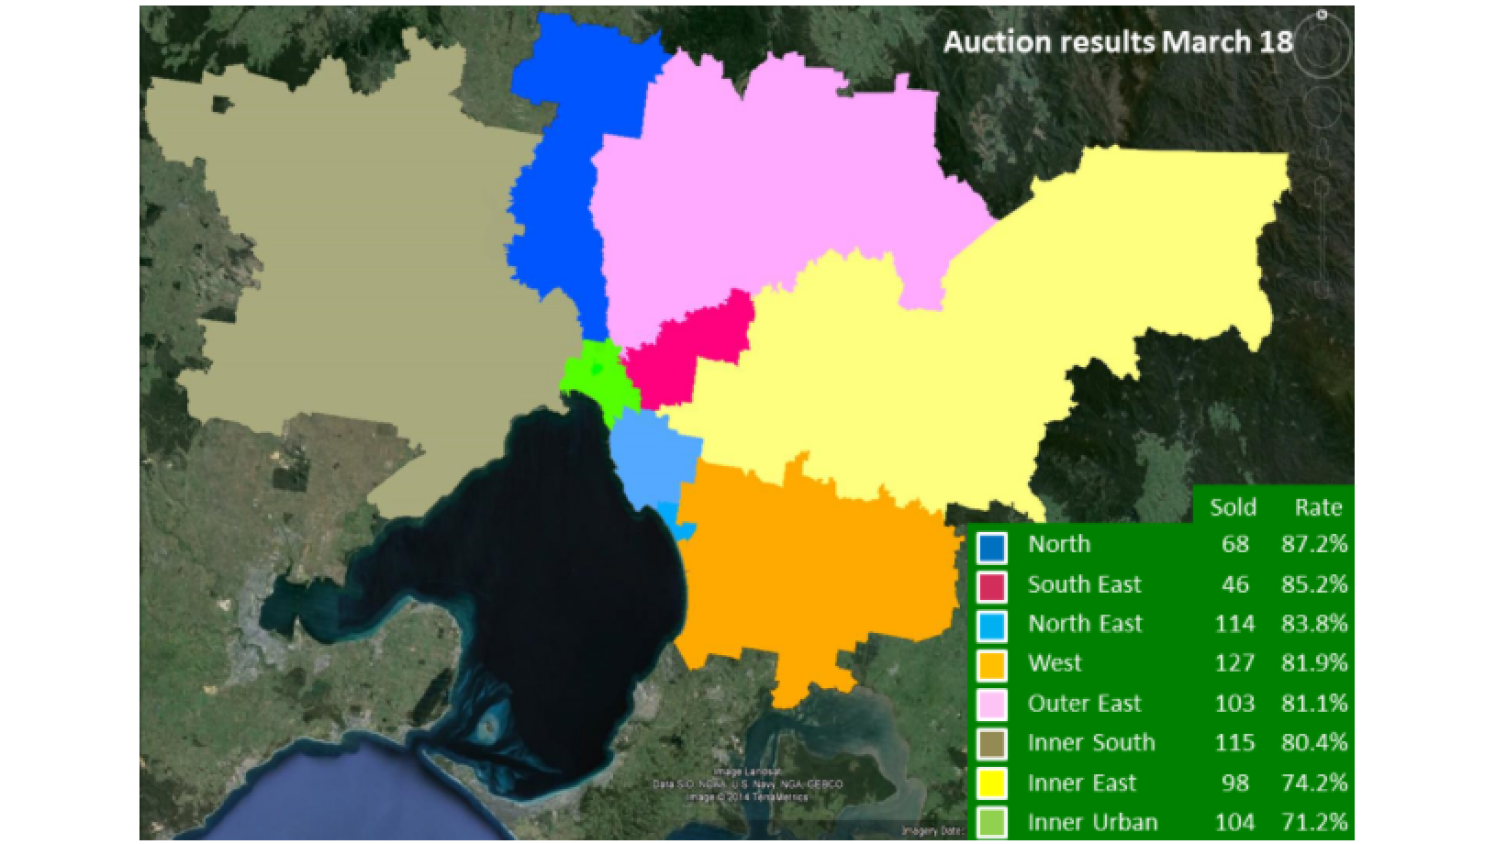 As prices continue to rise Melbourne records year's lowest auction clearance rate